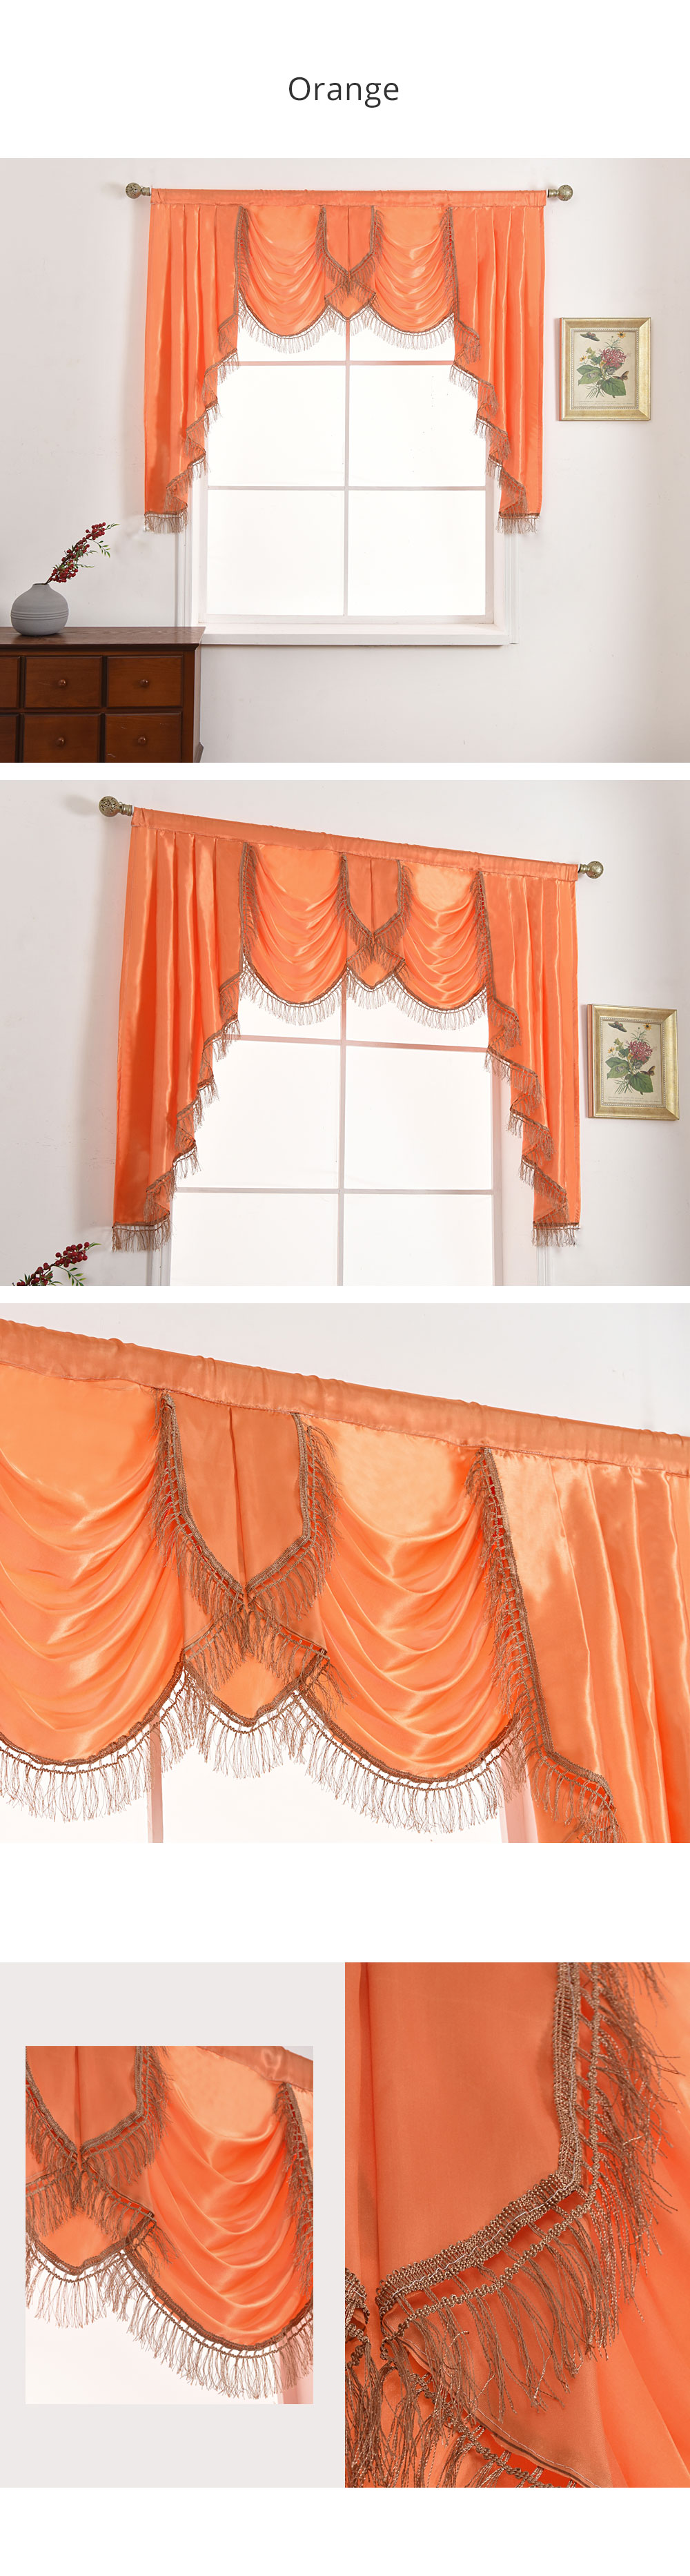 LOZUJOJU Solid Valance Flag Drops Sort Decor European Curtains for Bedroom Windows Luxury All Match Fabric Thread Tassel Elegant (2)